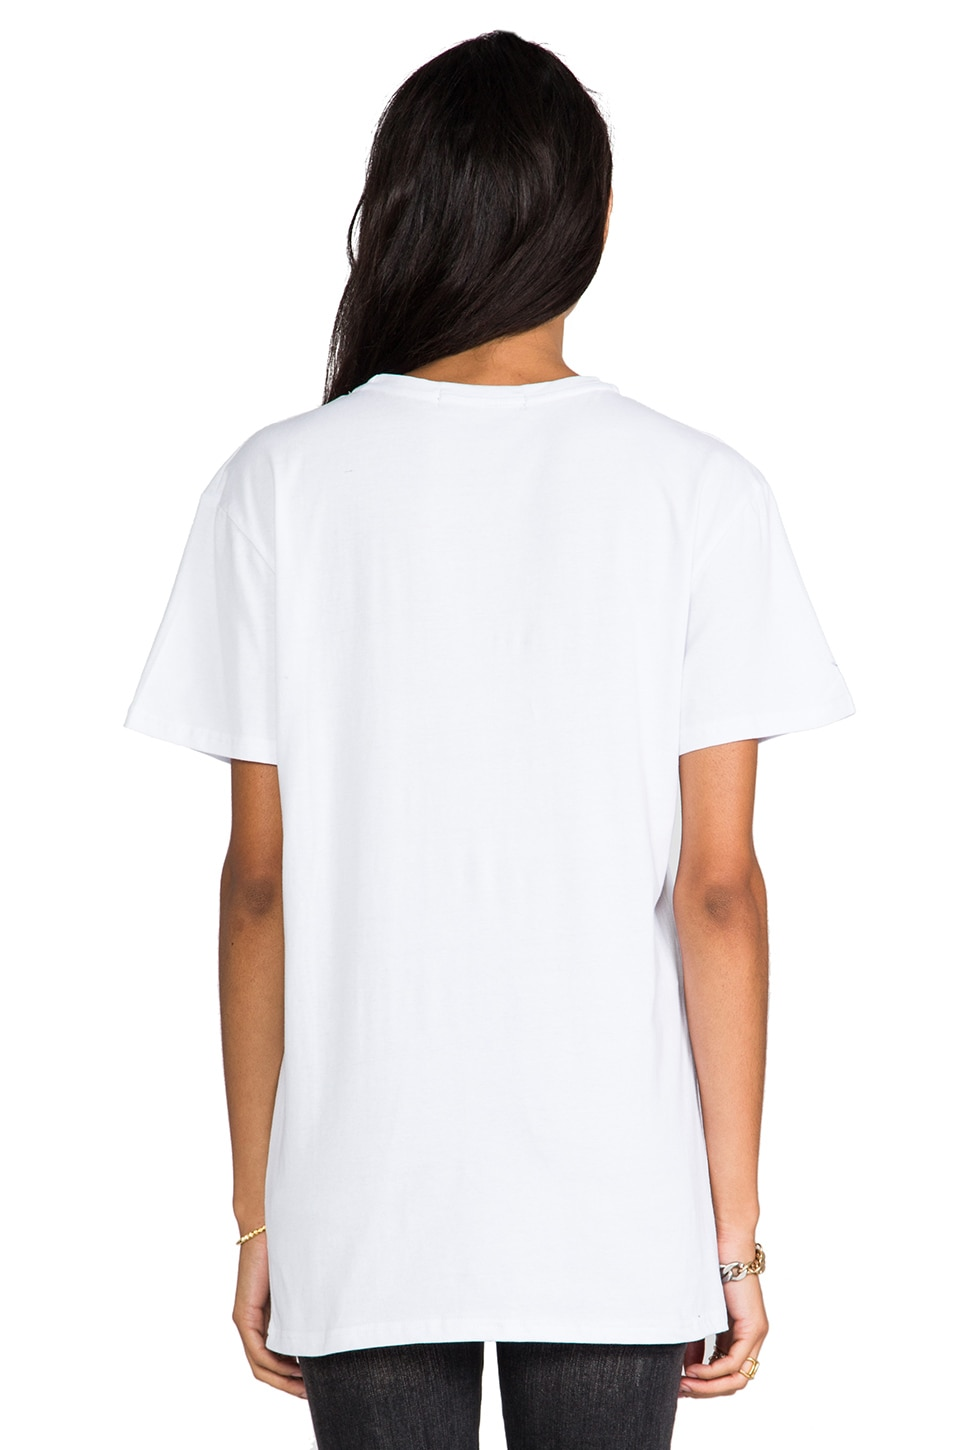 B-side by Wale Can I Live Tee in White/Black